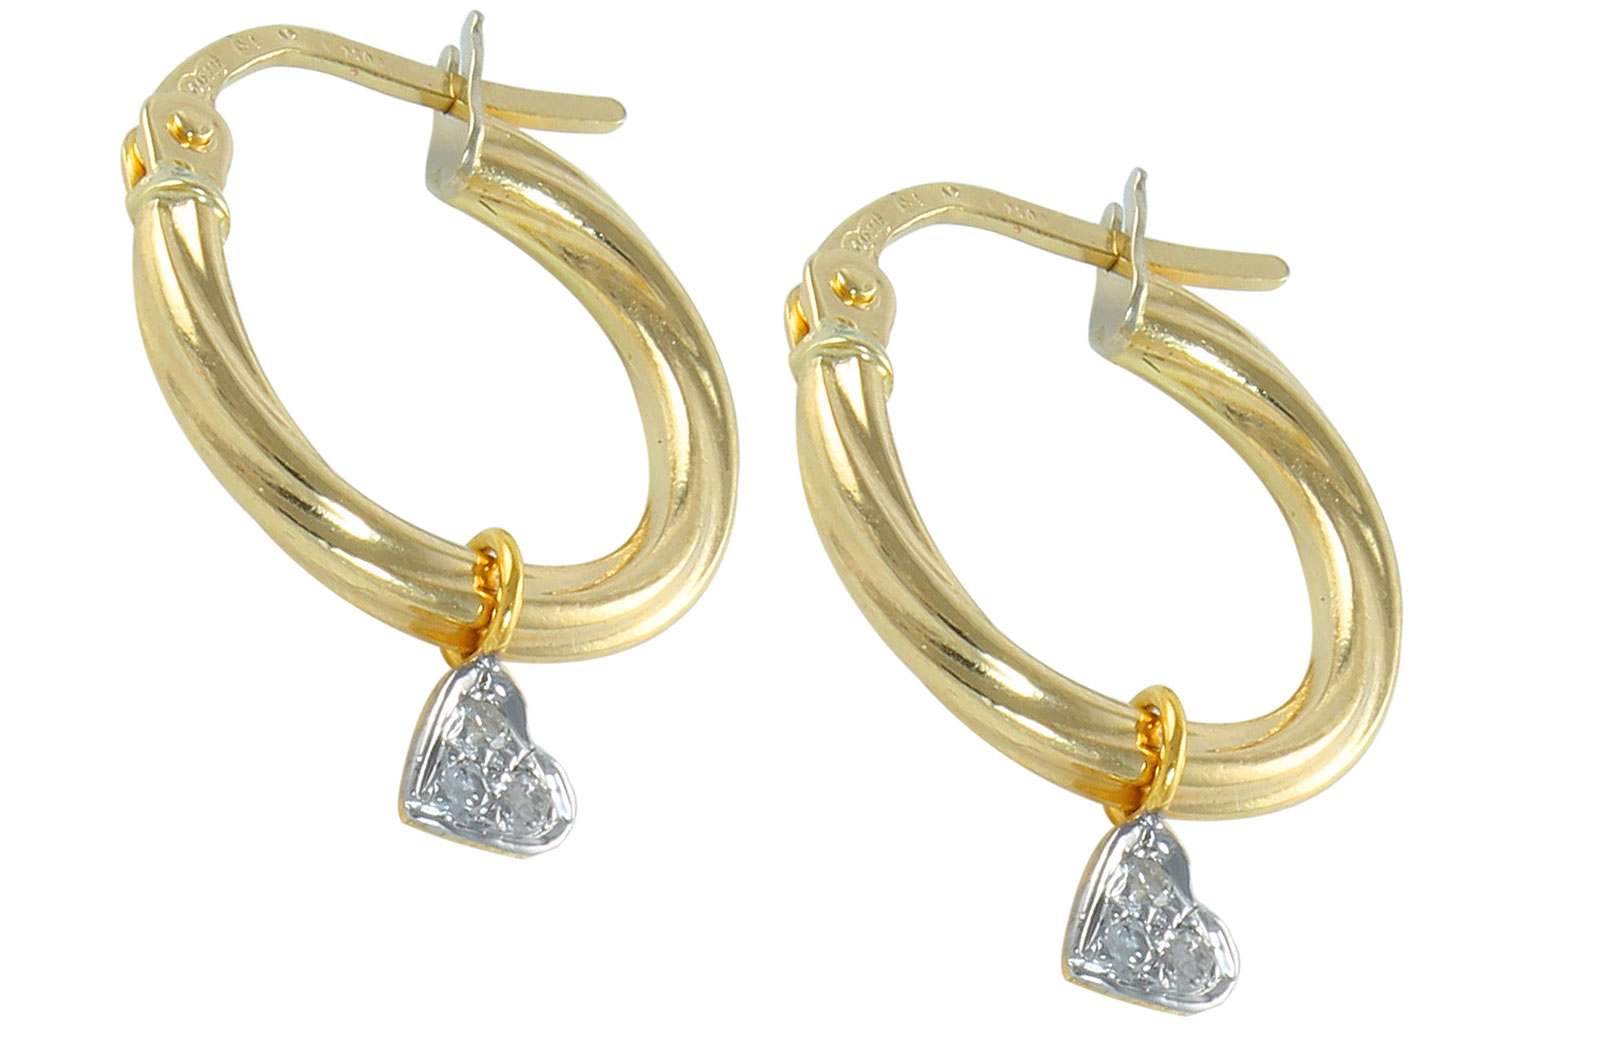 Vera Perla 18K Solid Gold and 0.06Cts Diamonds Small Hoops With Hearts Earrings